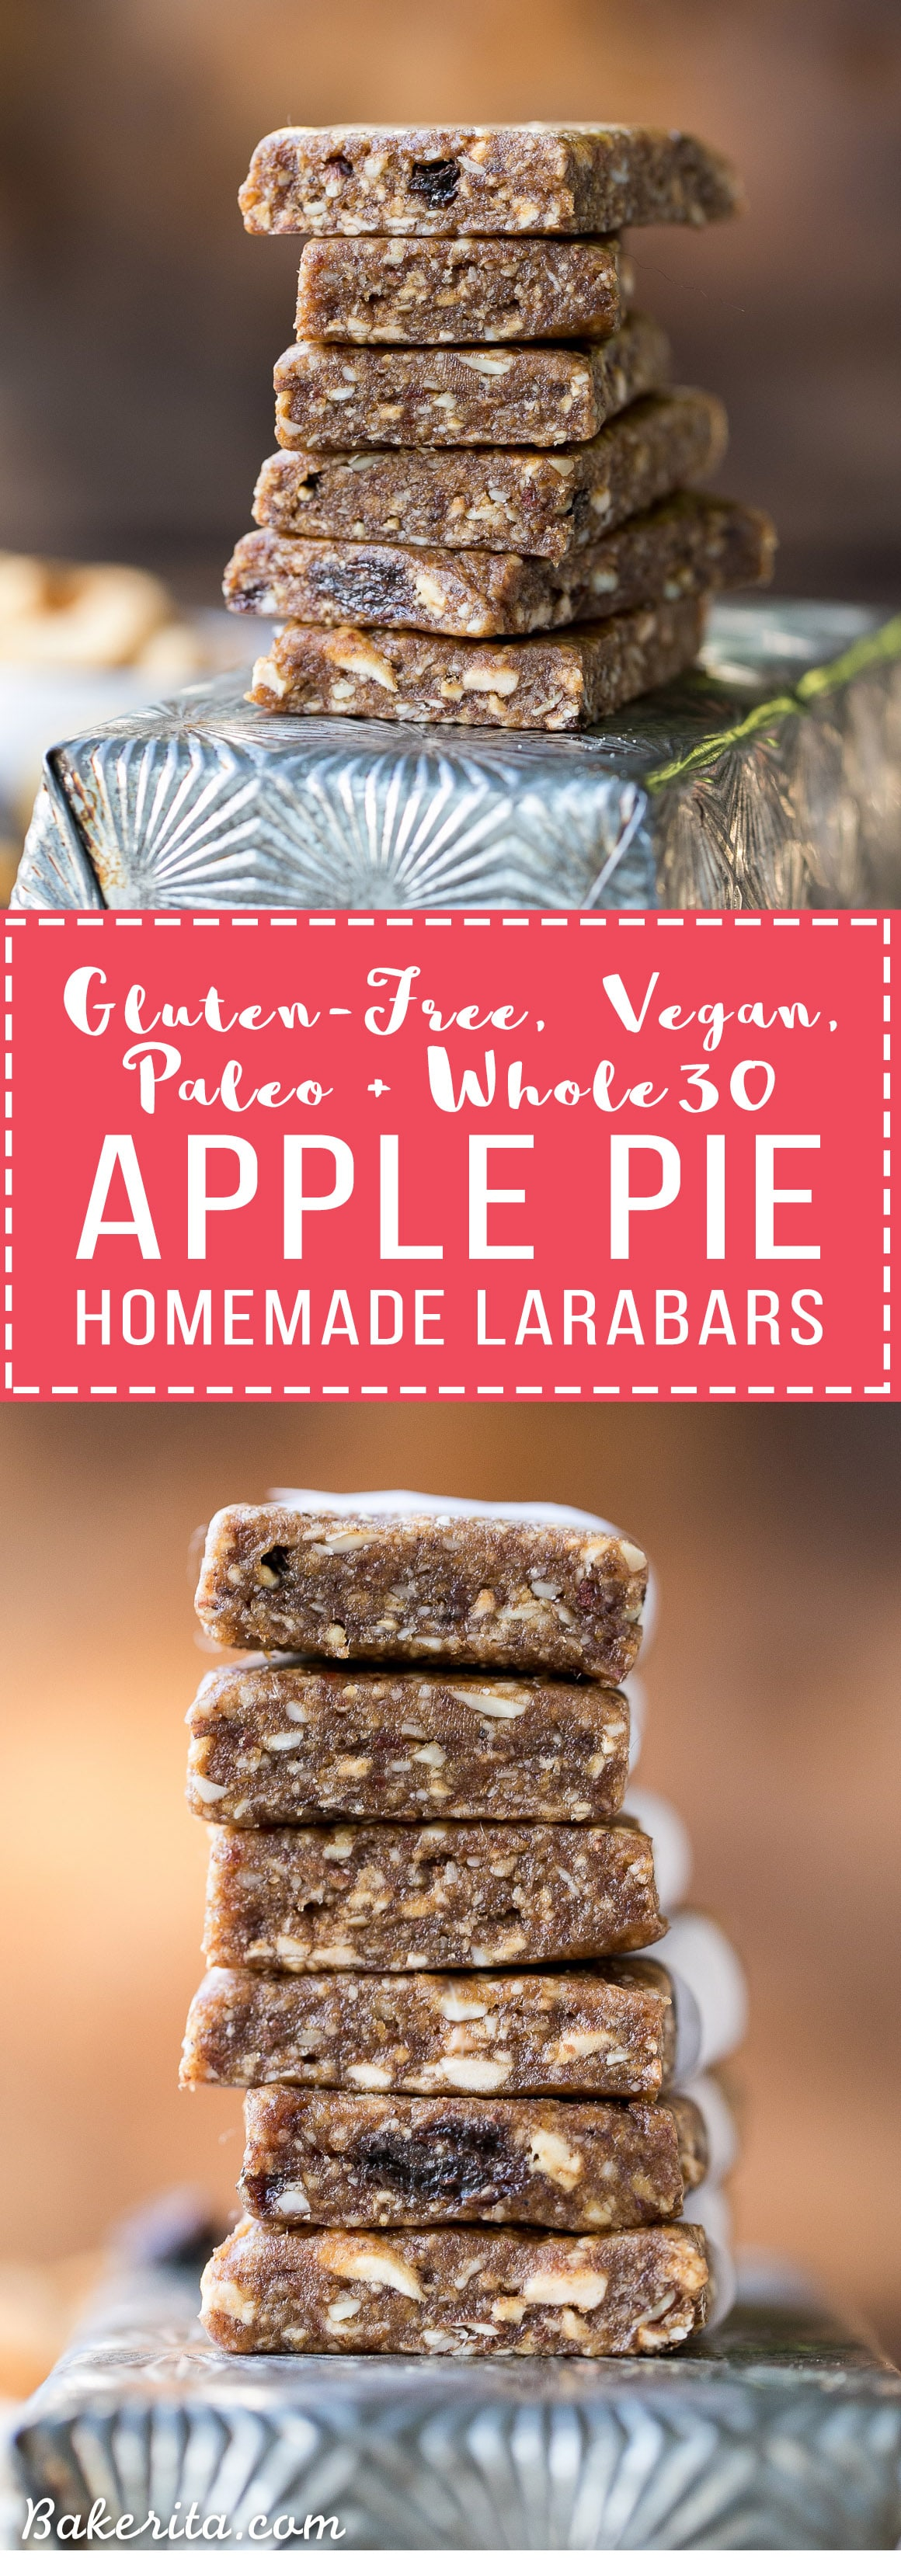 This Homemade Apple Pie Larabar Recipe is super simple and incredibly delicious - it requires no baking, and it's the perfect gluten-free, Paleo, vegan, and Whole30-friendly snack.